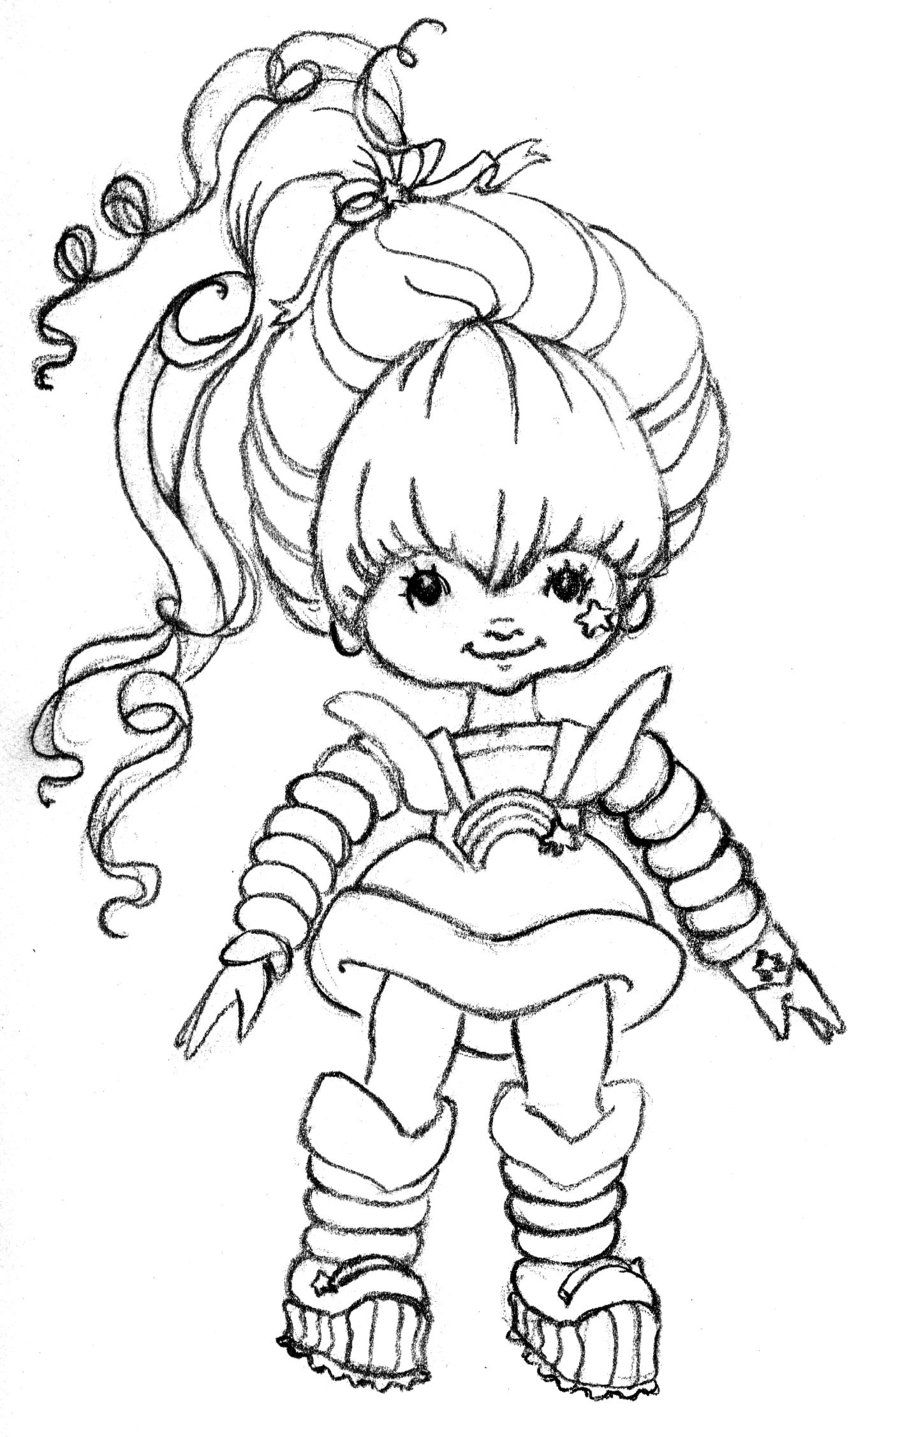 D Rainbow Colouring Pages Cartoon Coloring Pages Coloring Books Coloring Pages